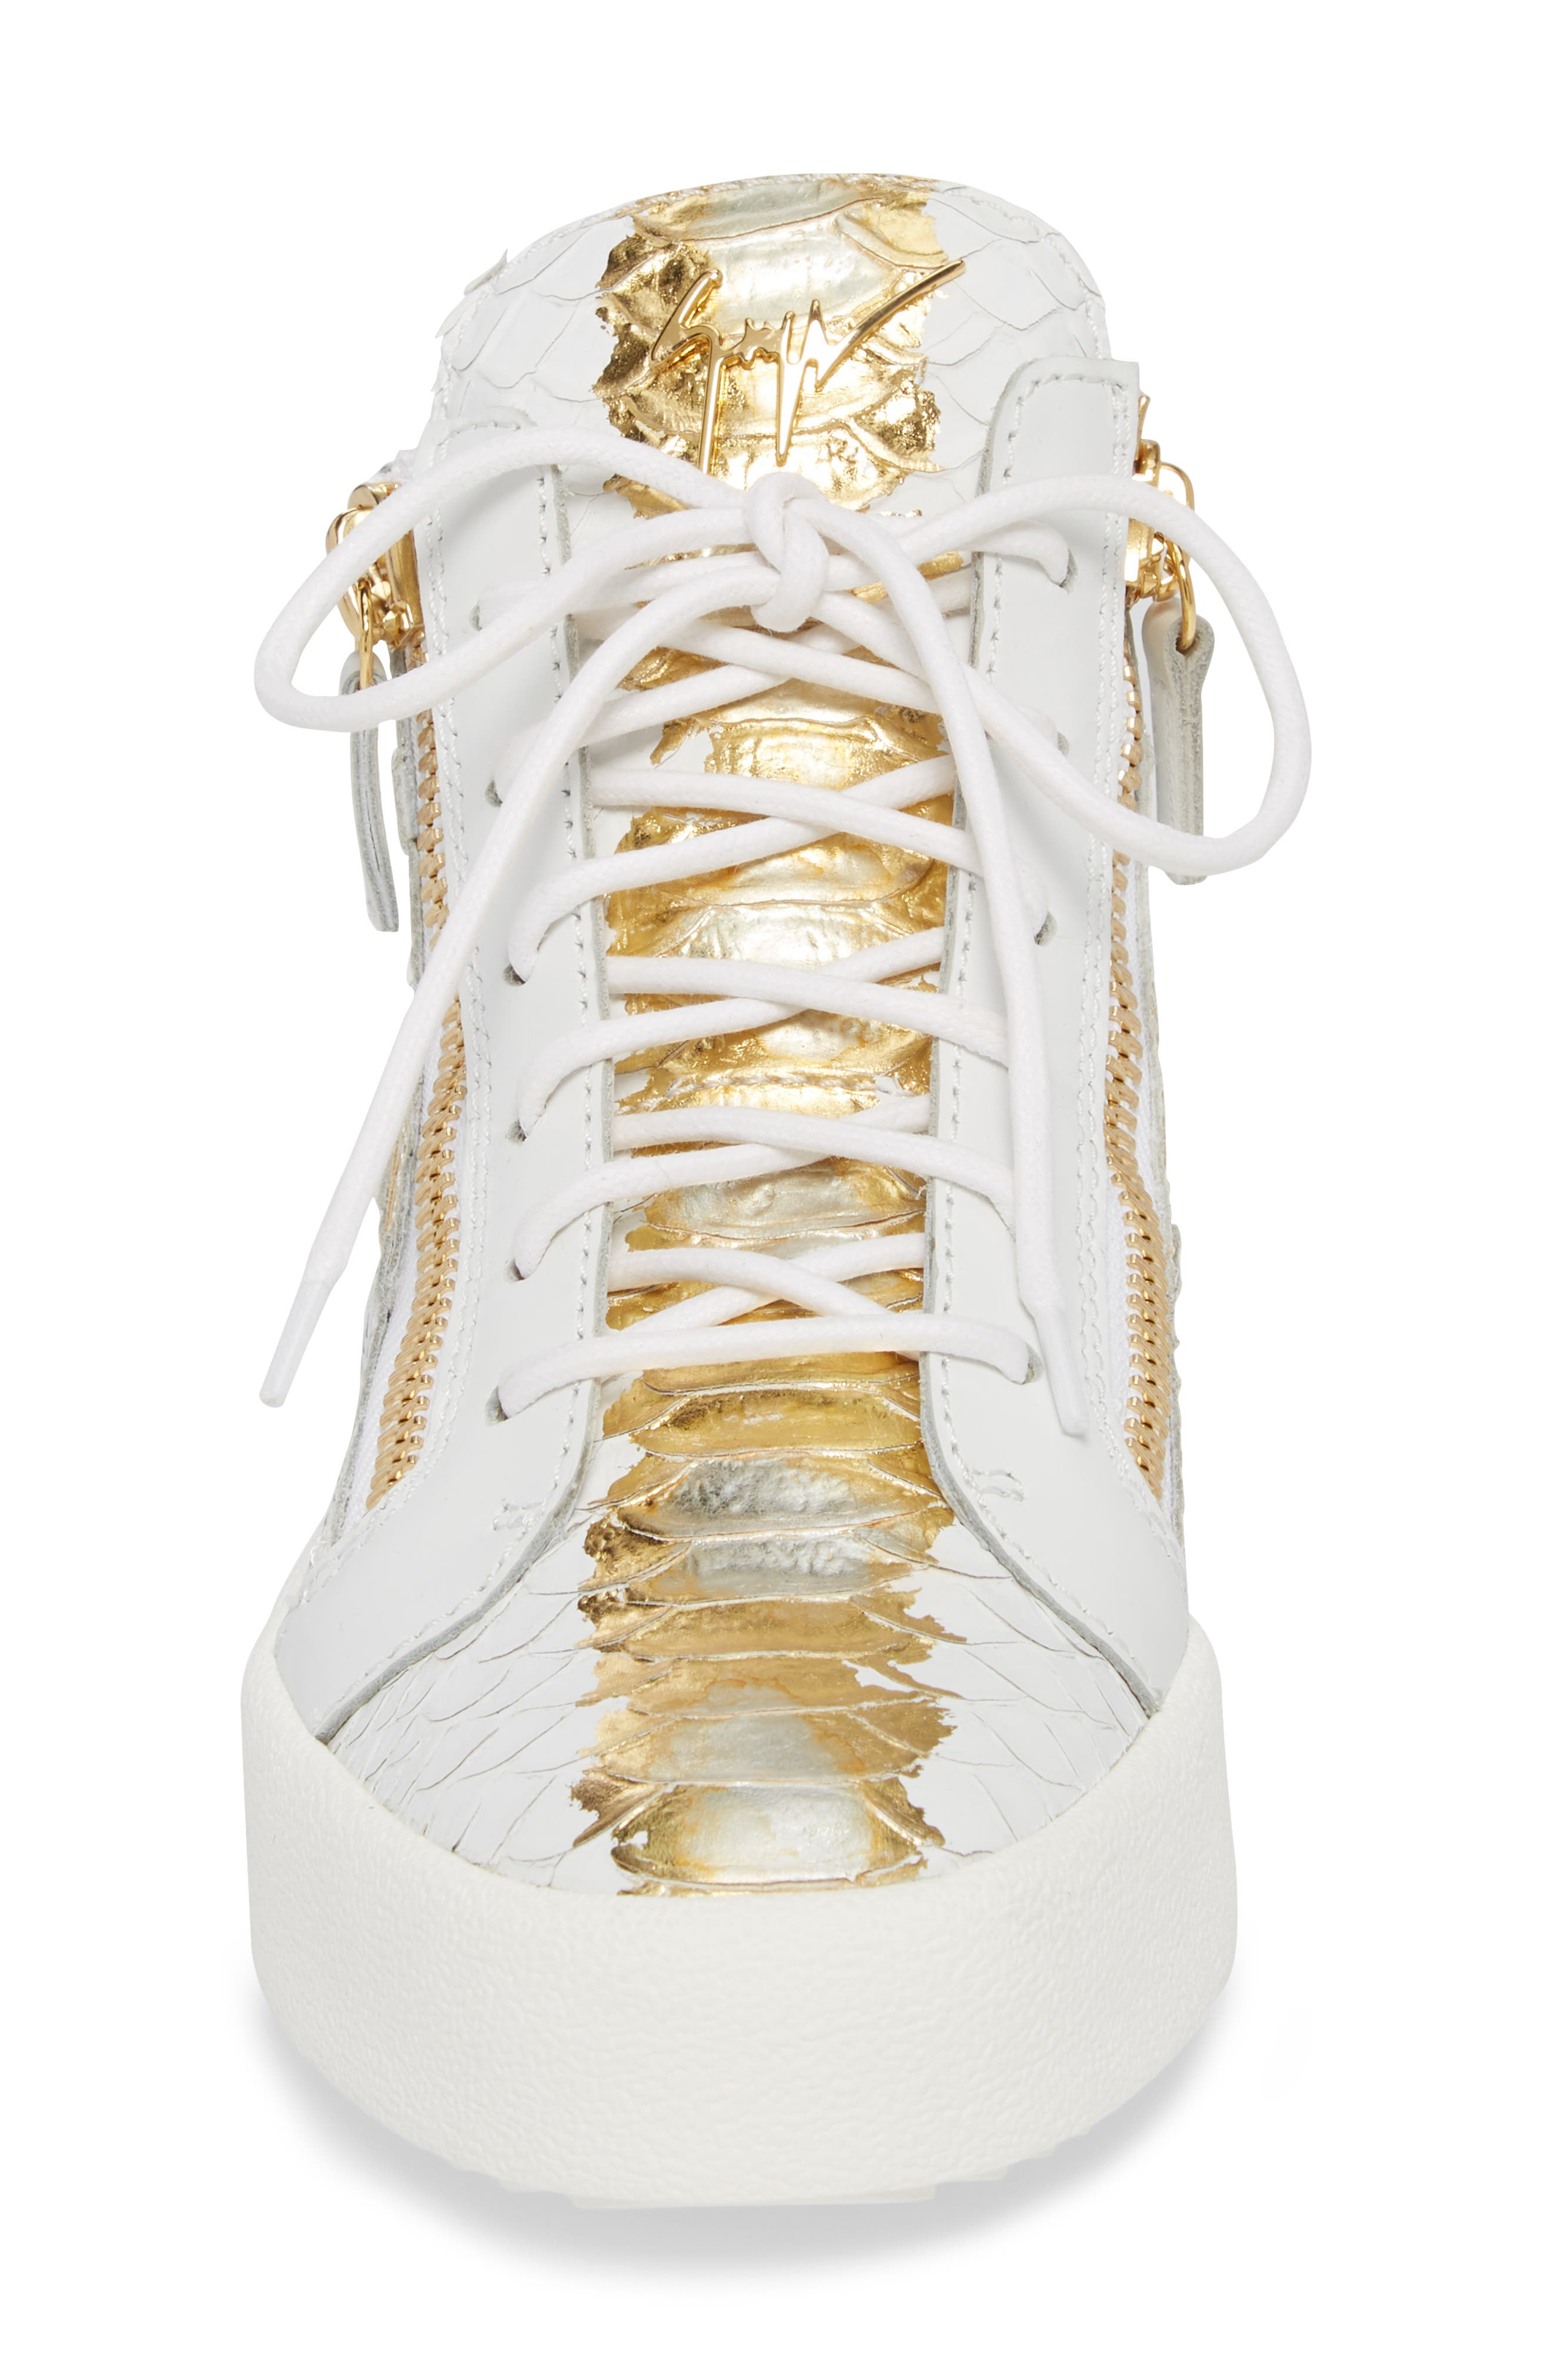 May London Mid Top Sneaker,                             Alternate thumbnail 4, color,                             White/ Gold